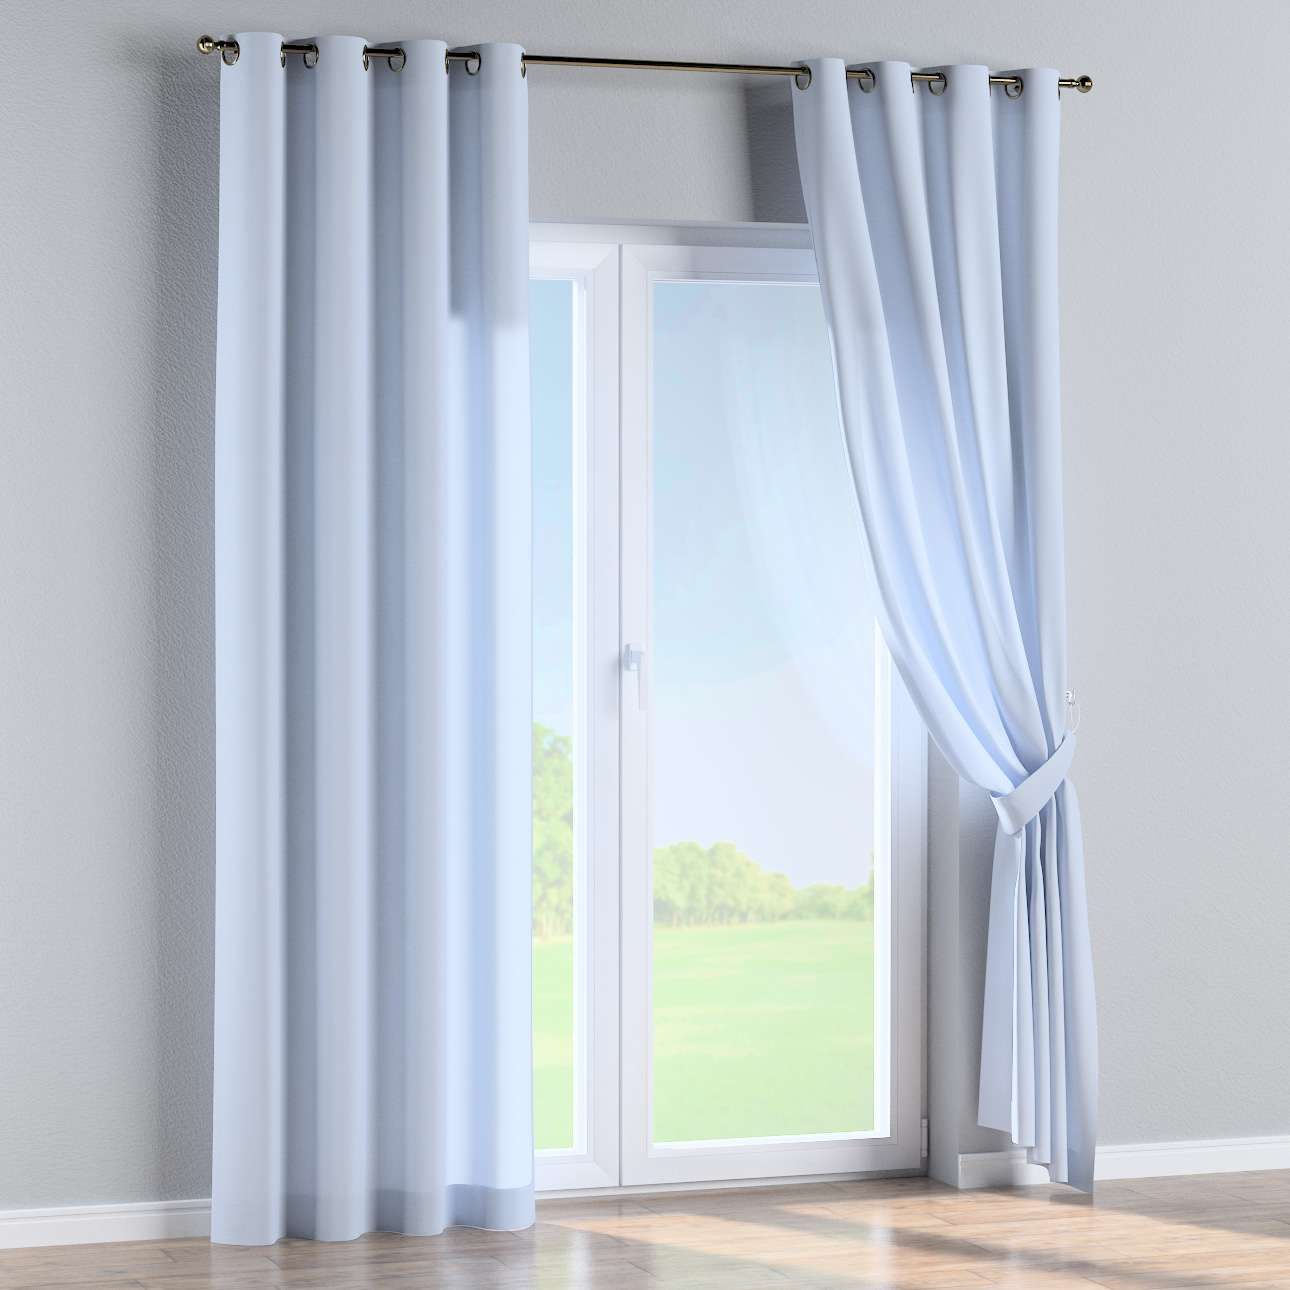 Eyelet curtains 130 x 260 cm (51 x 102 inch) in collection Loneta , fabric: 133-35